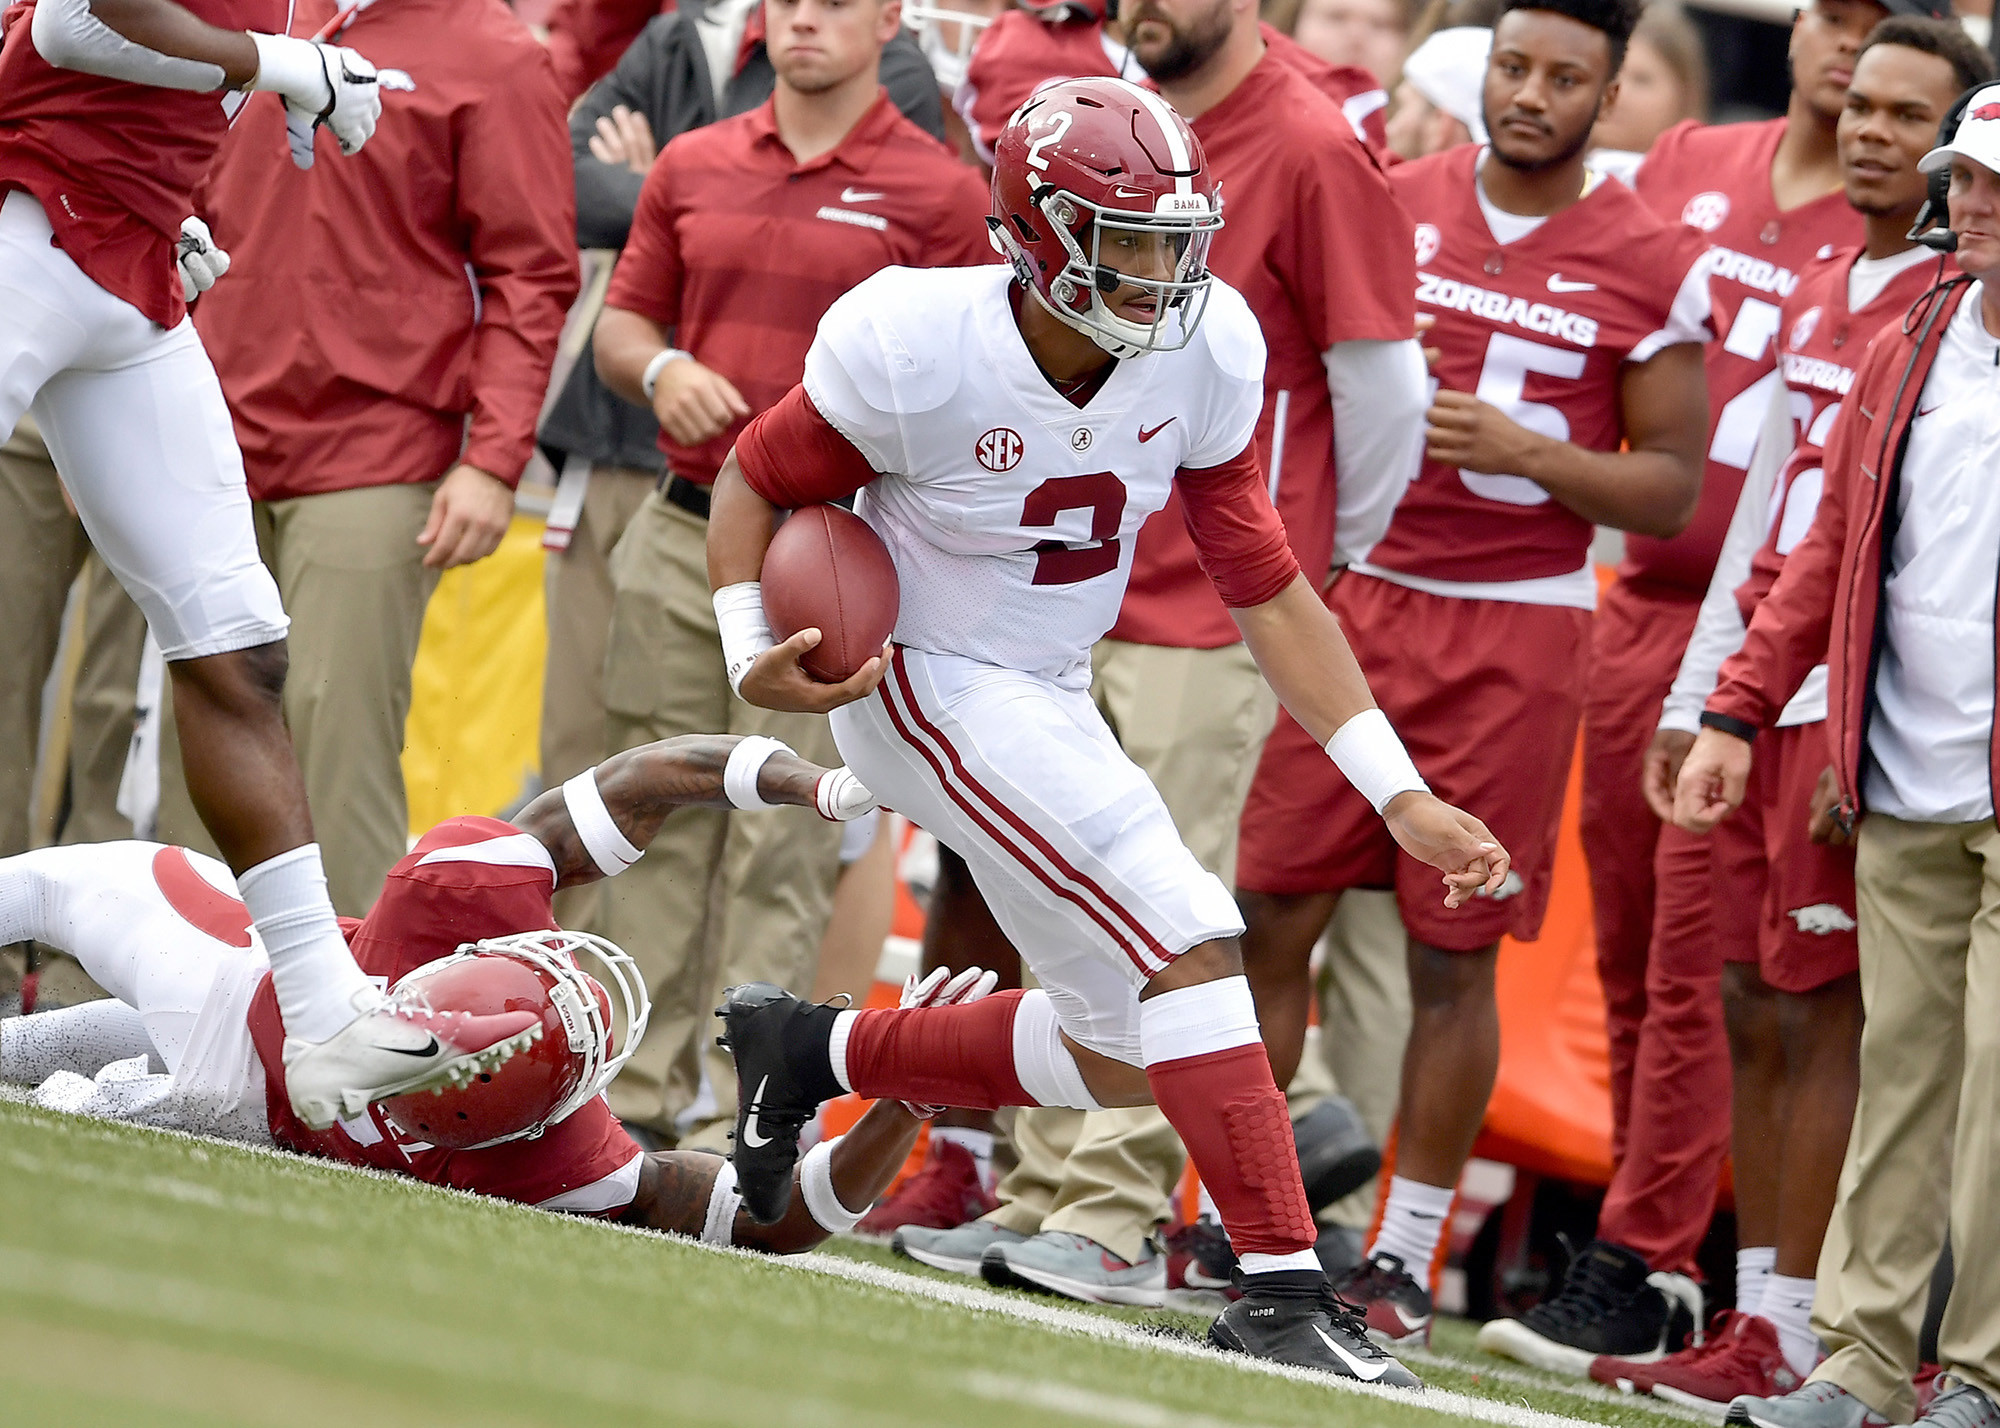 Alabama Crimson Tide quarterback Jalen Hurts (2) with a keeper in the first half of the NCAA football game against the Arkansas Razorbacks at Razorback Stadium on Oct. 6, 2018, in Fayetteville, Ark. Alabama defeated Arkansas 65-31. (Photo by Lee Walls)